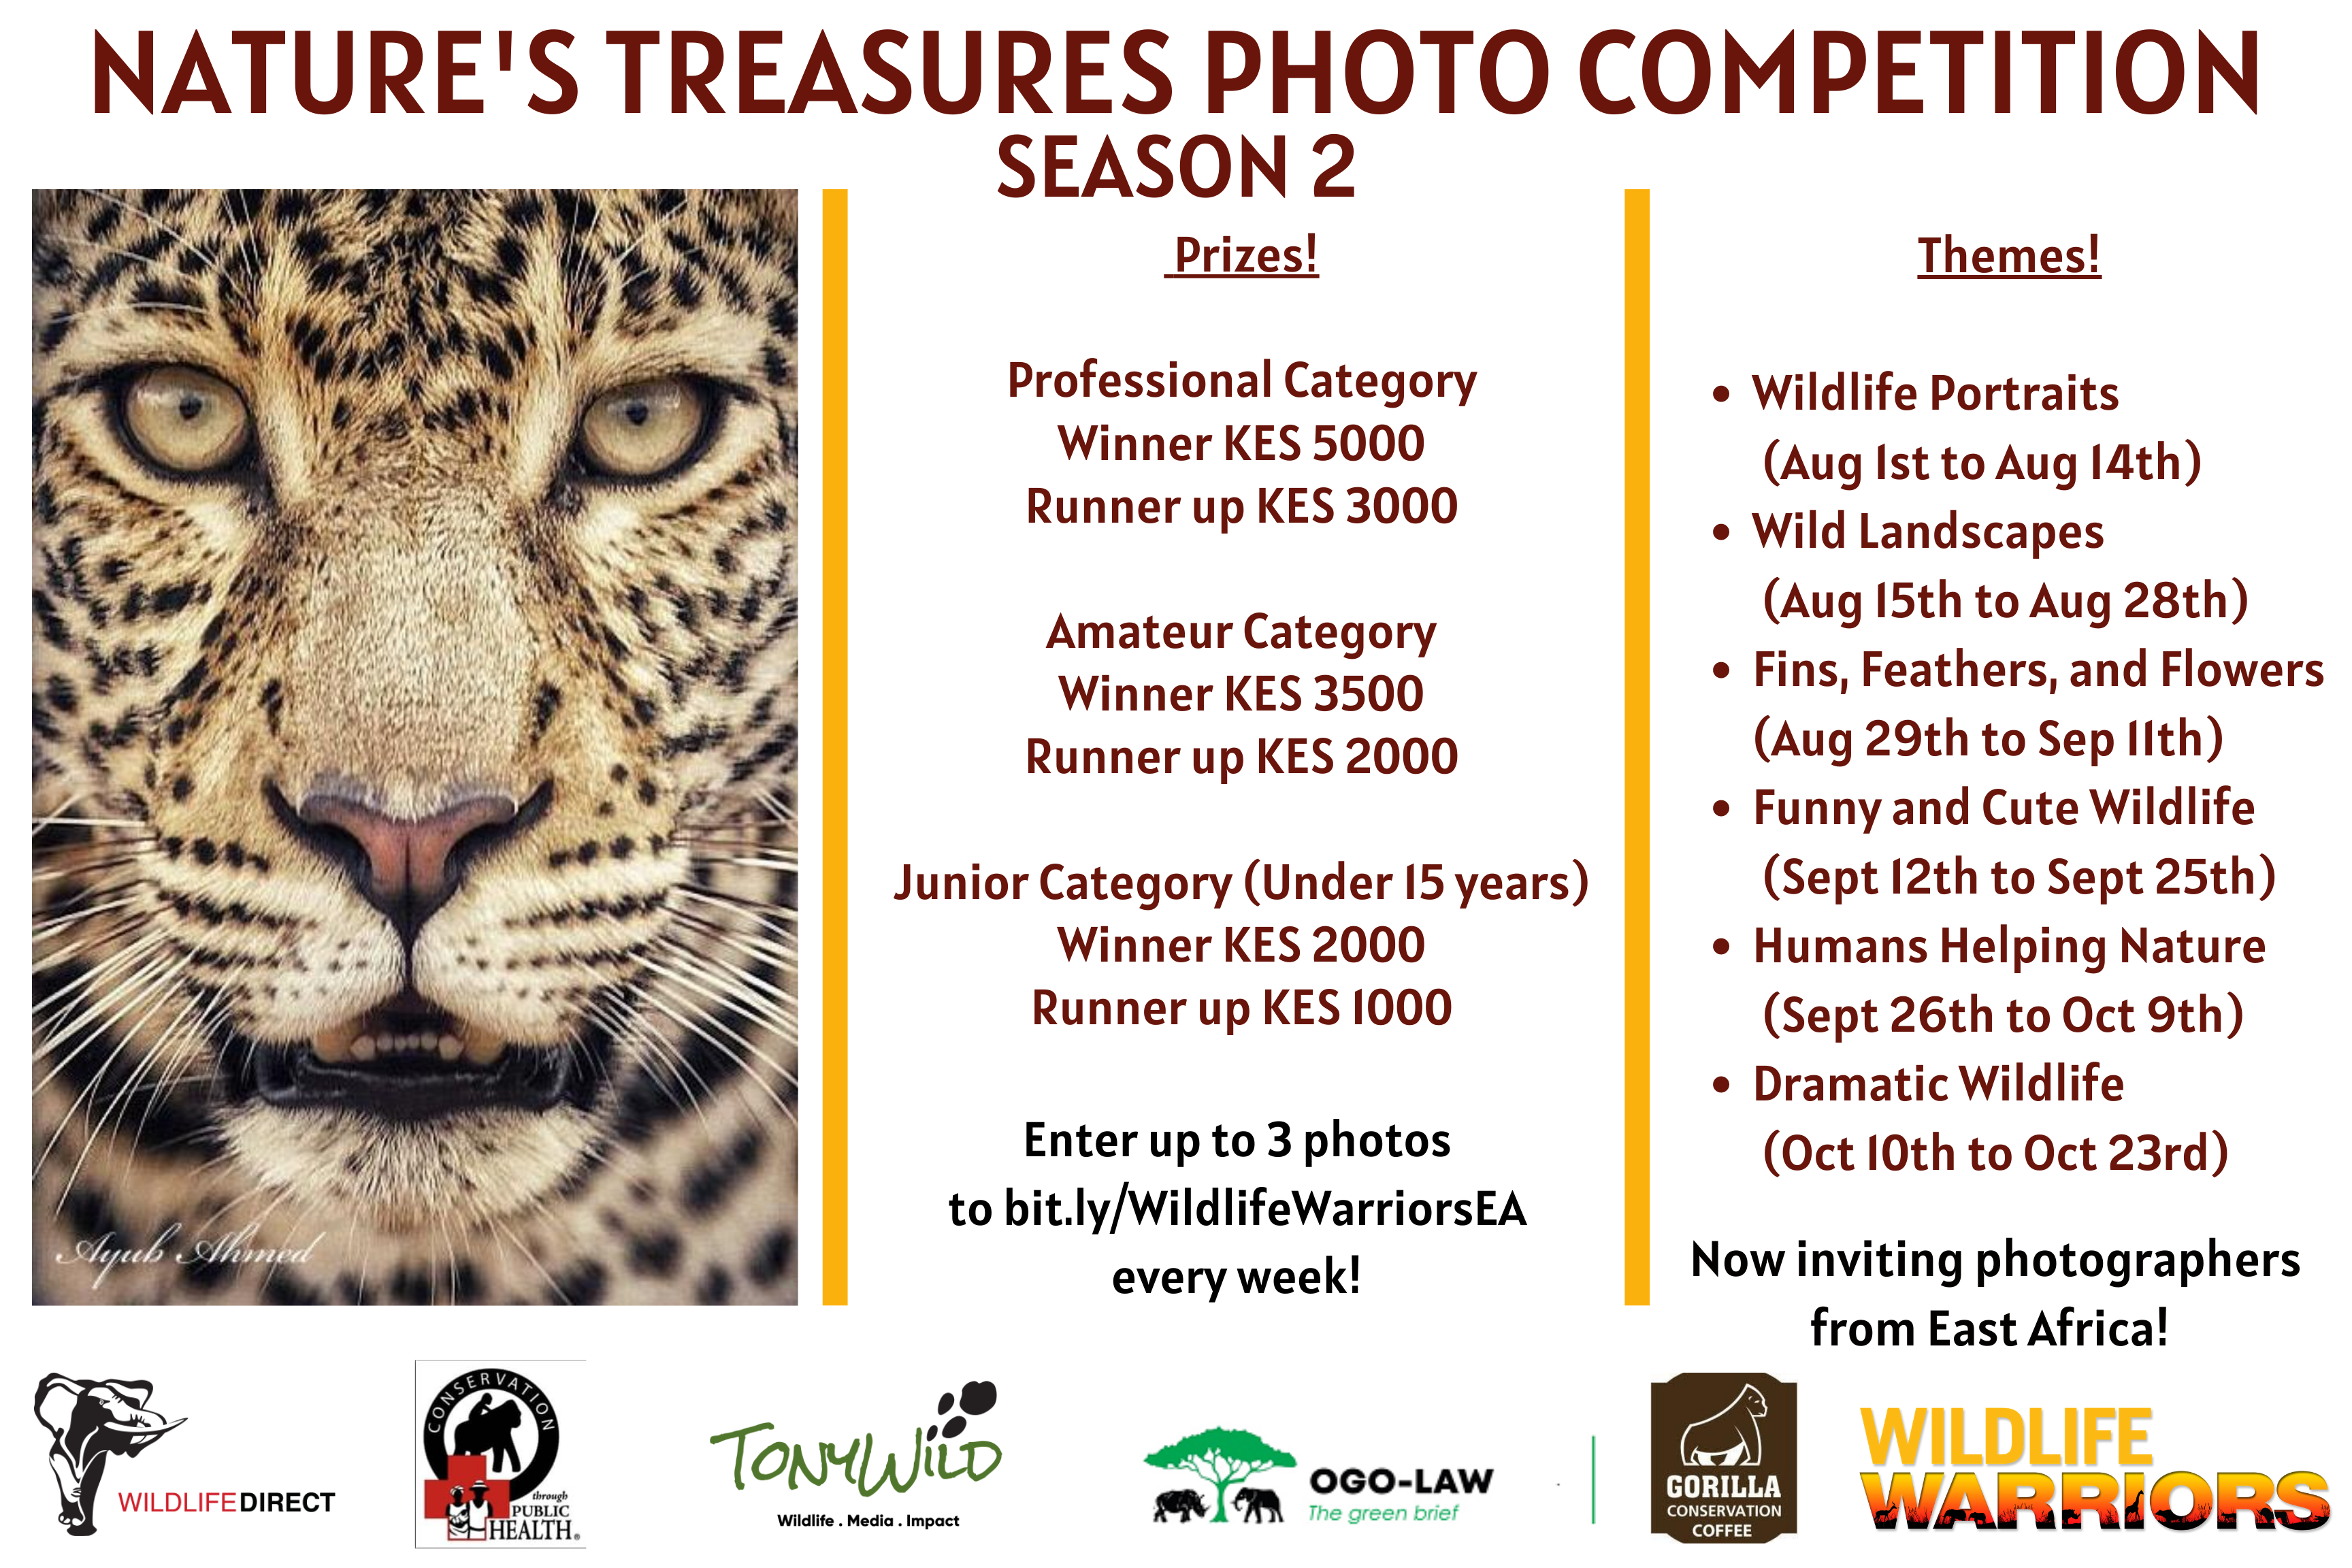 Launch of Season Two of the Nature's Treasures Photo Competition